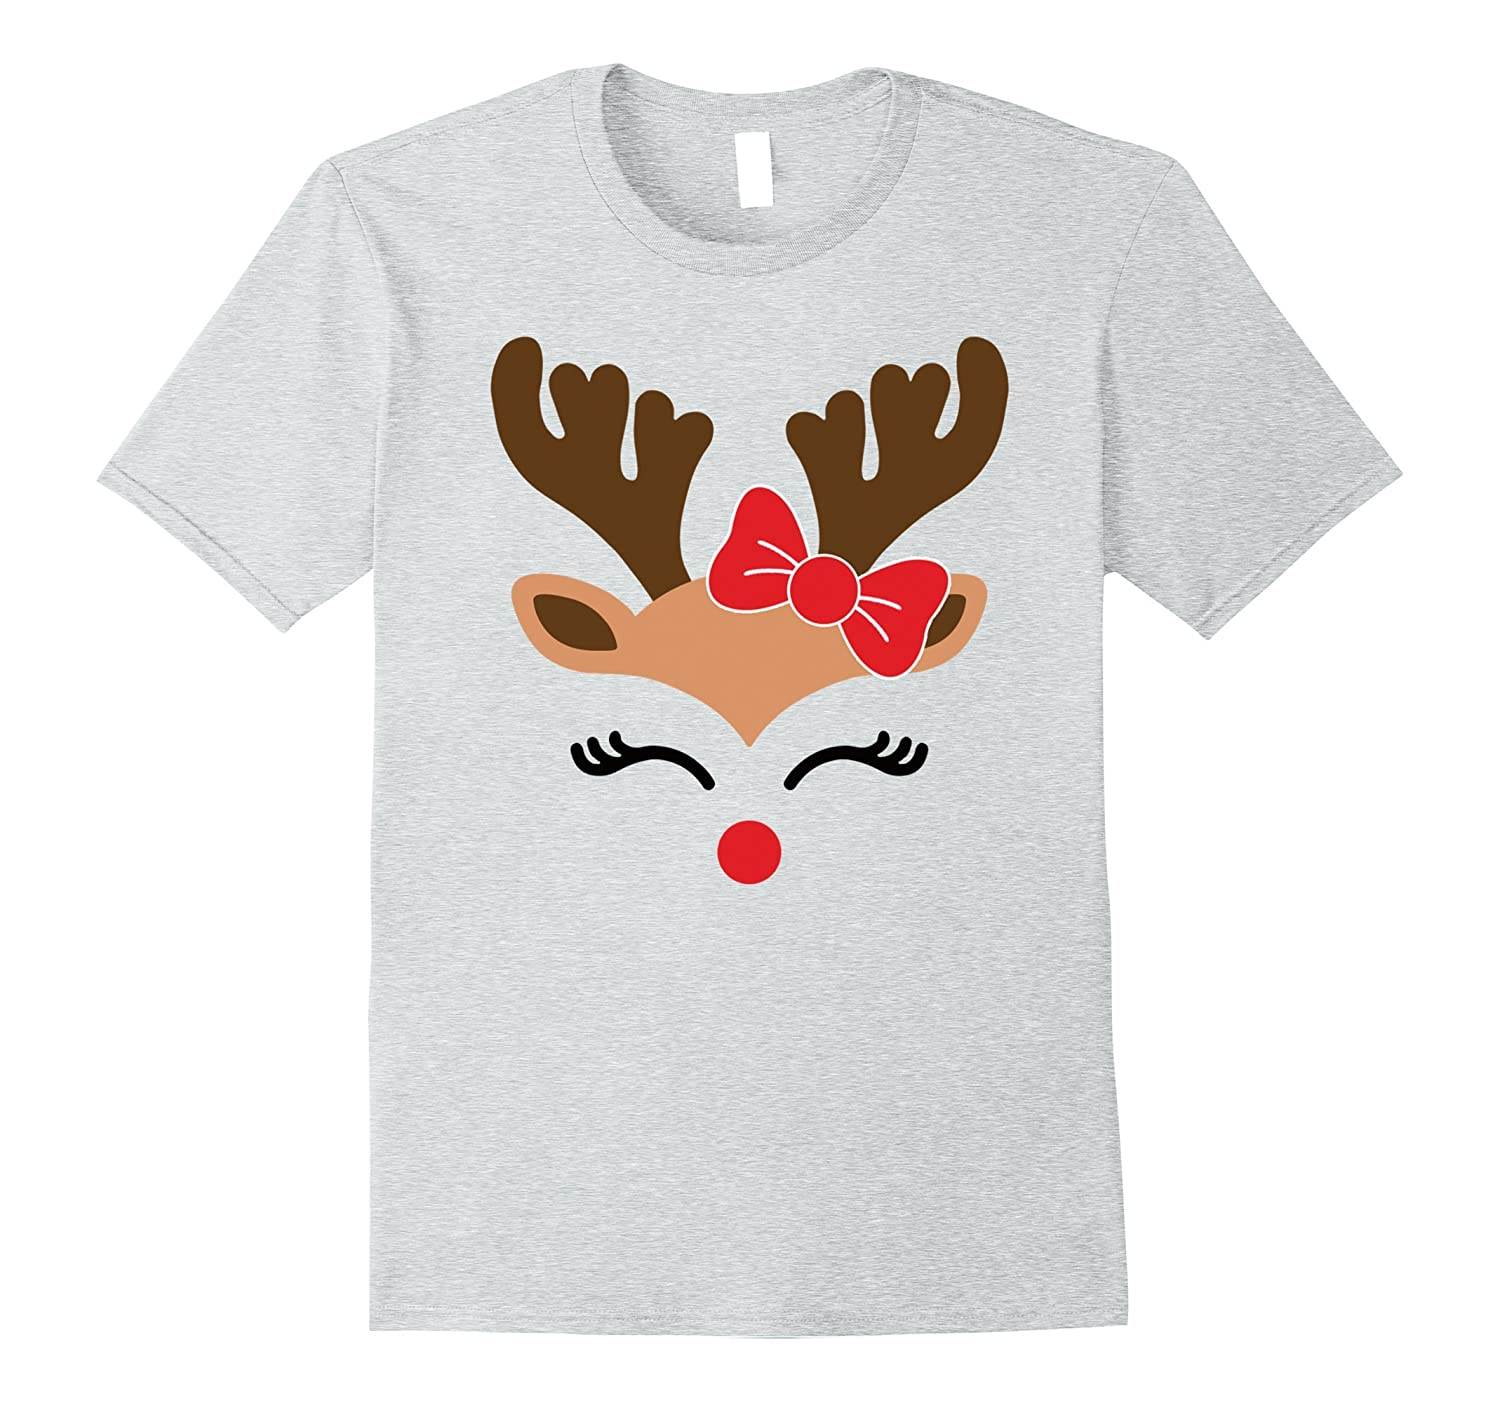 Kids Christmas Shirts.Reindeer Face T Shirt For Girls Funny Christmas Tee For Kids Fl